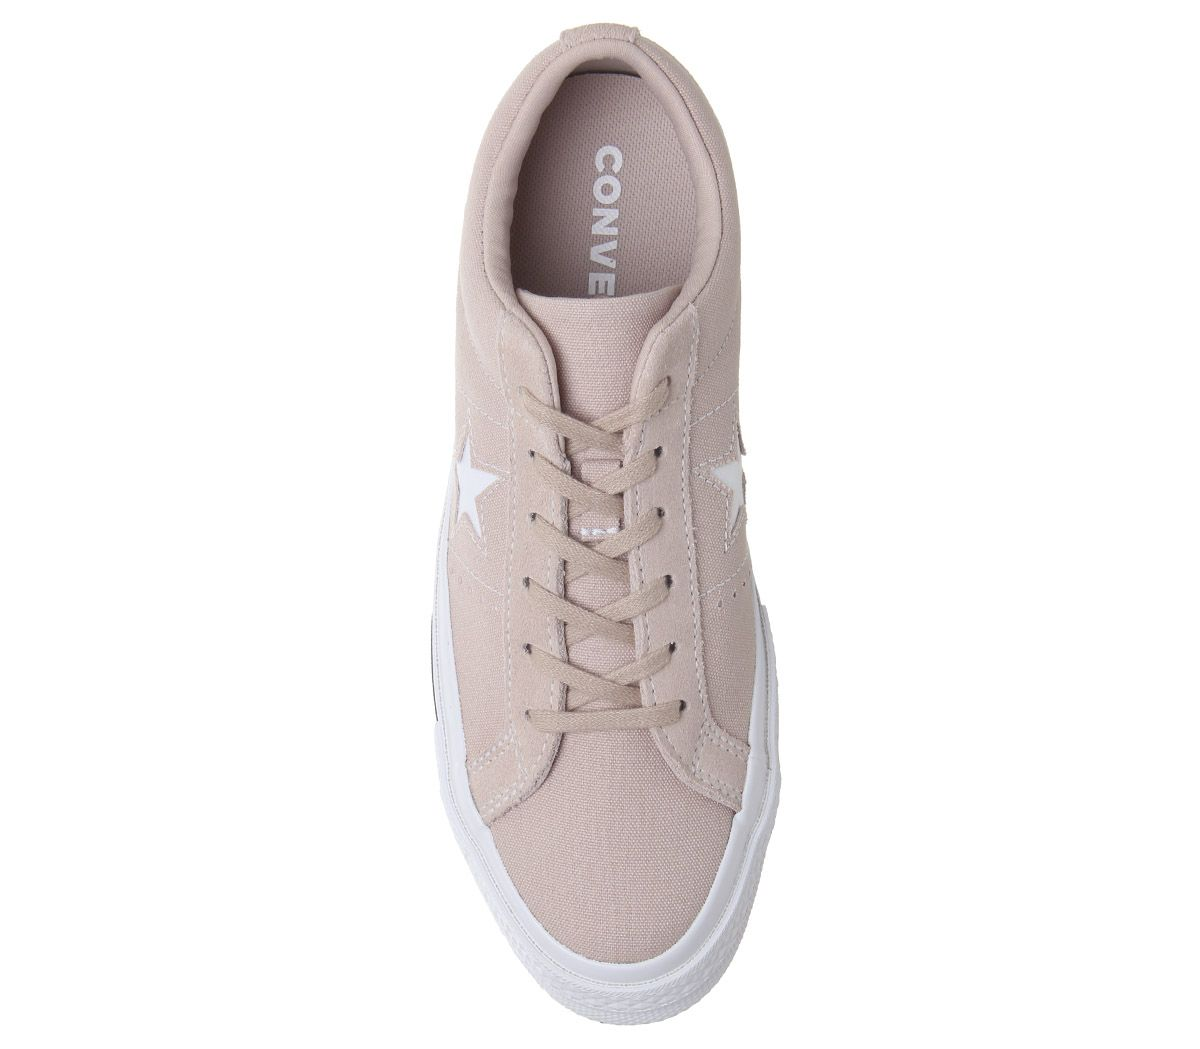 Womens-Converse-One-Star-Trainers-Particle-Beige-White-Black-Trainers-Shoes thumbnail 21